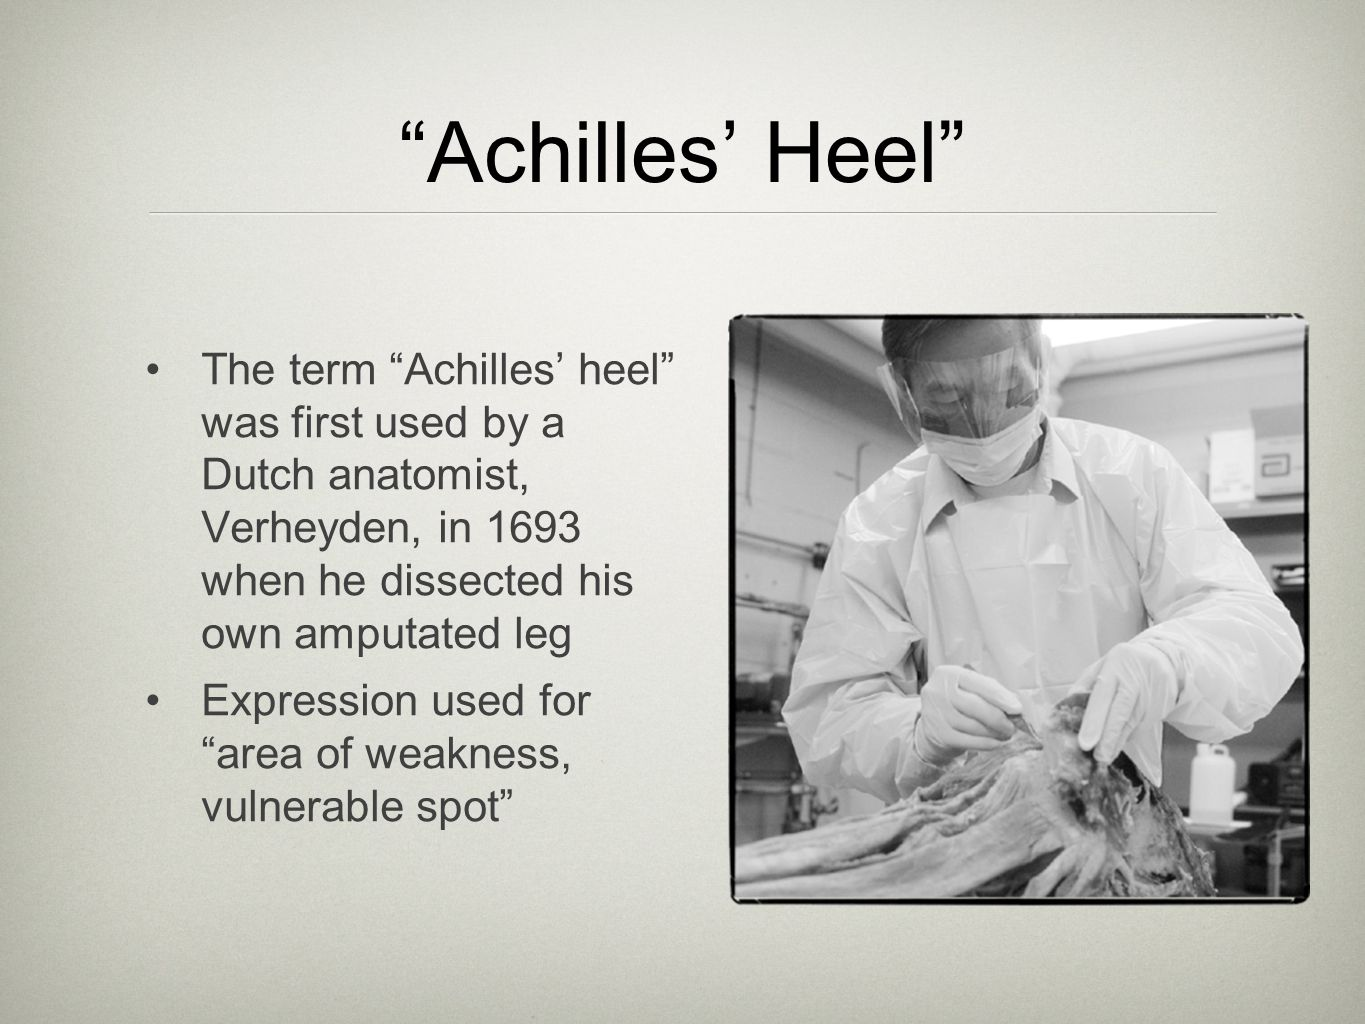 Achilles' Heel The term Achilles' heel was first used by a Dutch anatomist, Verheyden, in 1693 when he dissected his own amputated leg.